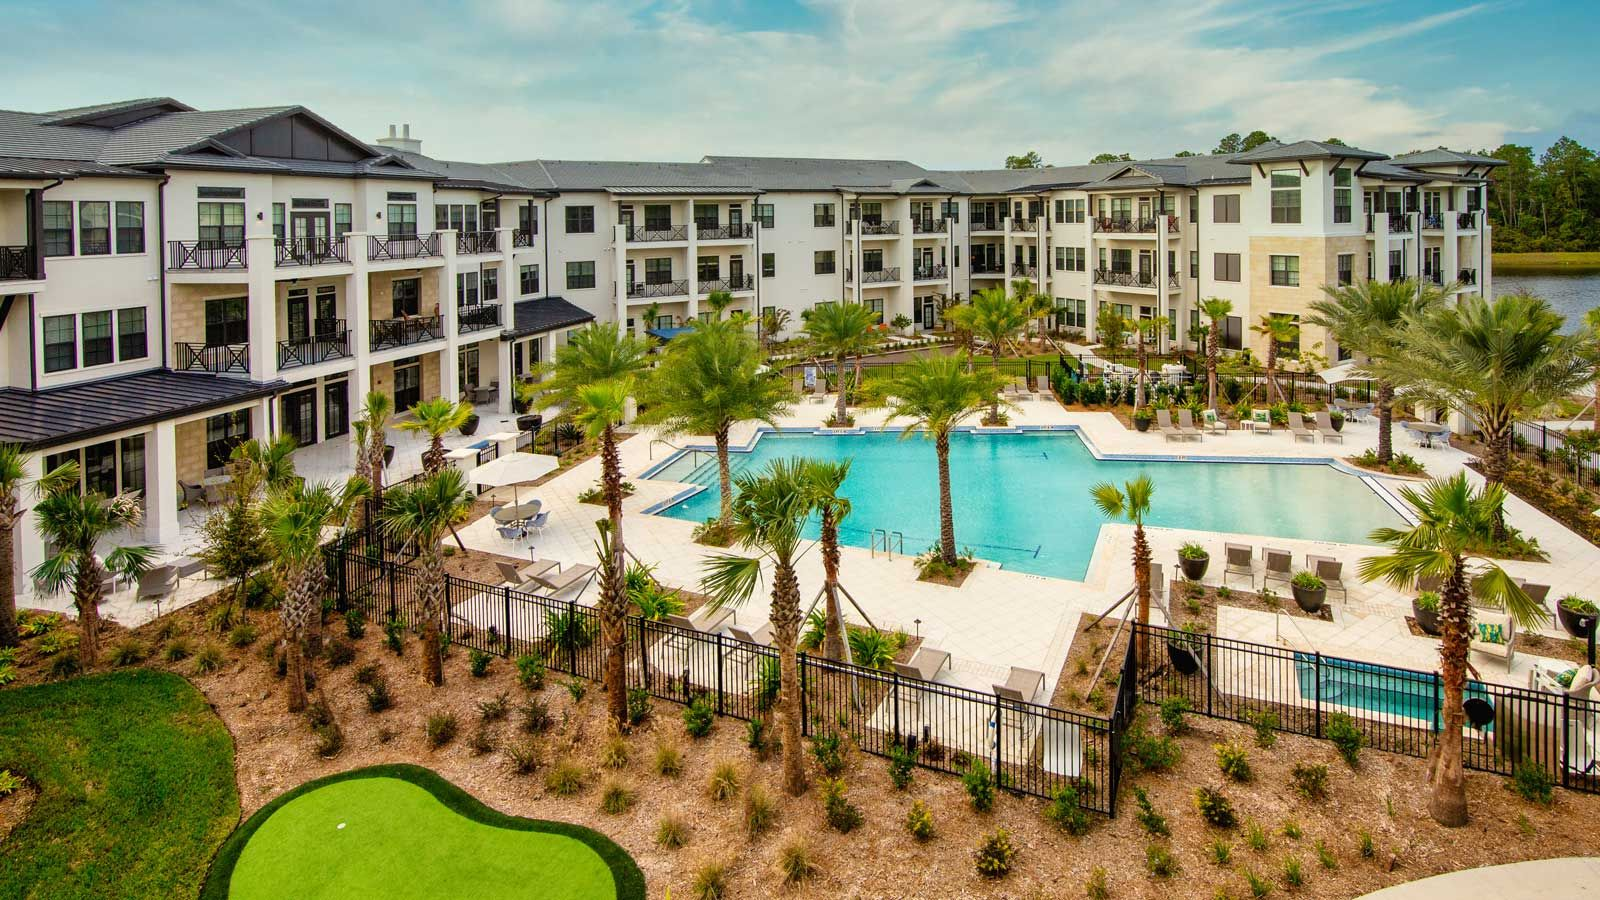 Senior Citizen Apartments near Jacksonville, Florida